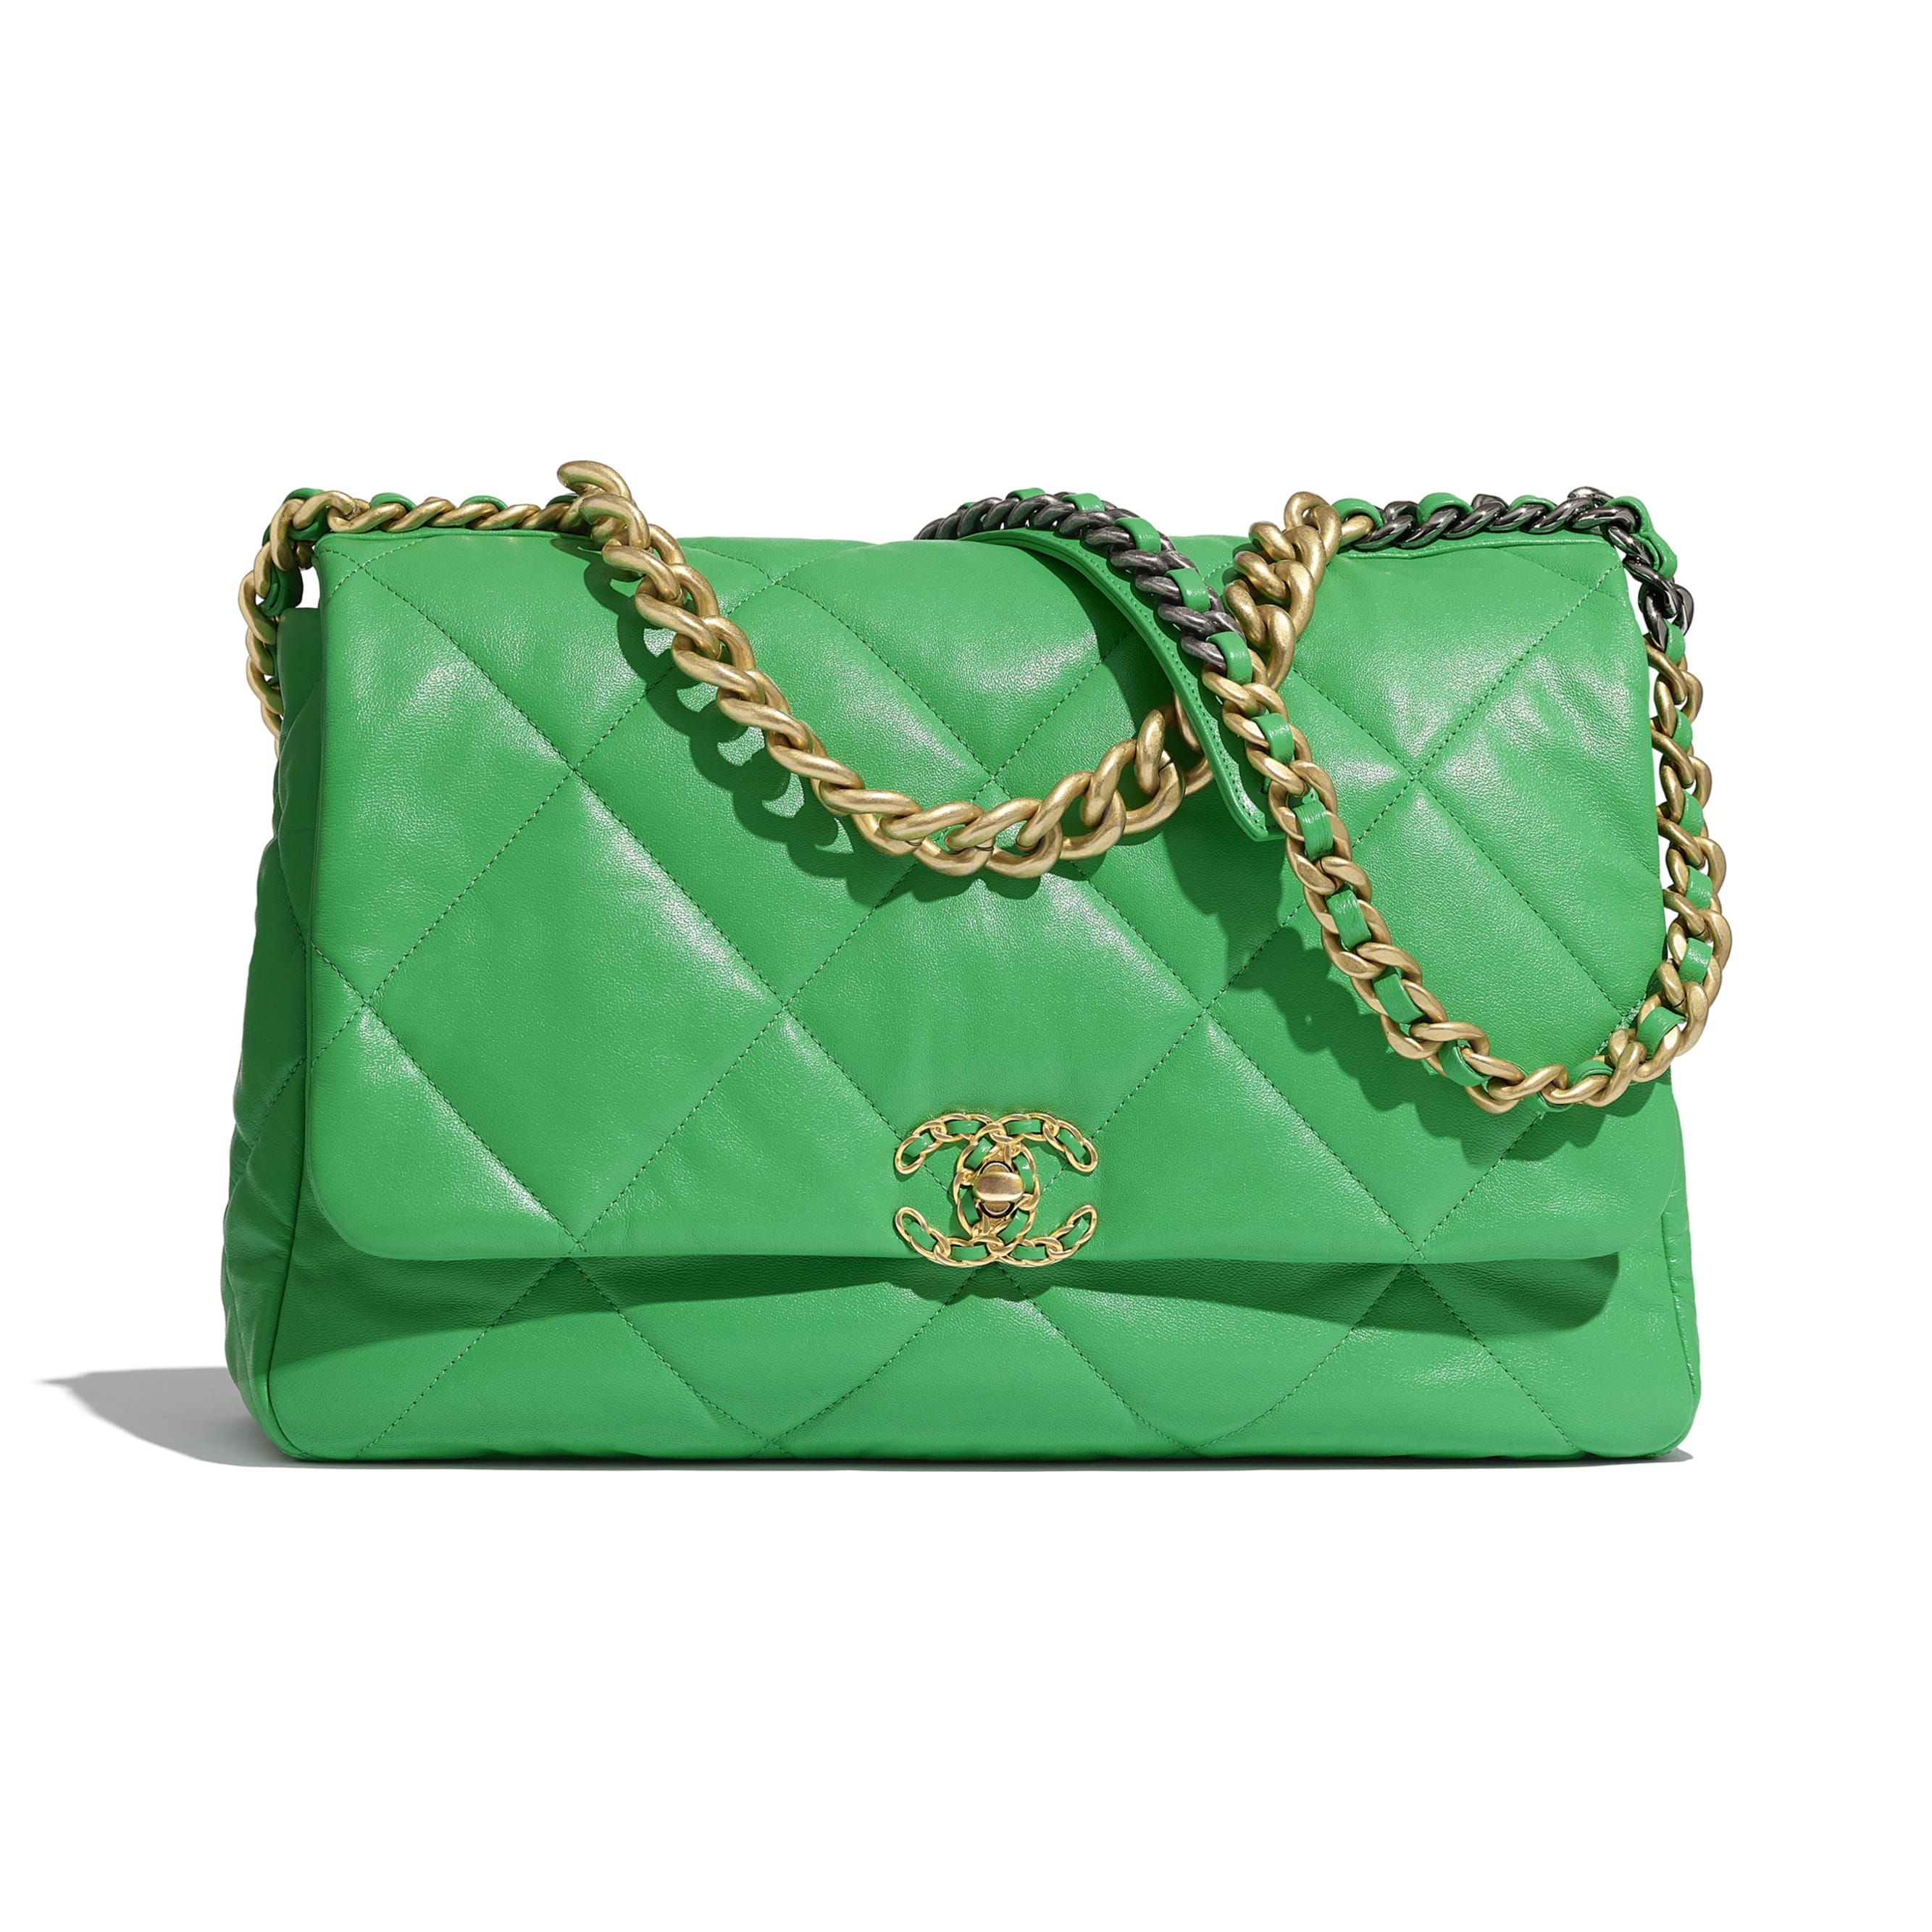 CHANEL 19 Maxi Flap Bag - Green - Lambskin, Gold-Tone, Silver-Tone & Ruthenium-Finish Metal - Default view - see standard sized version